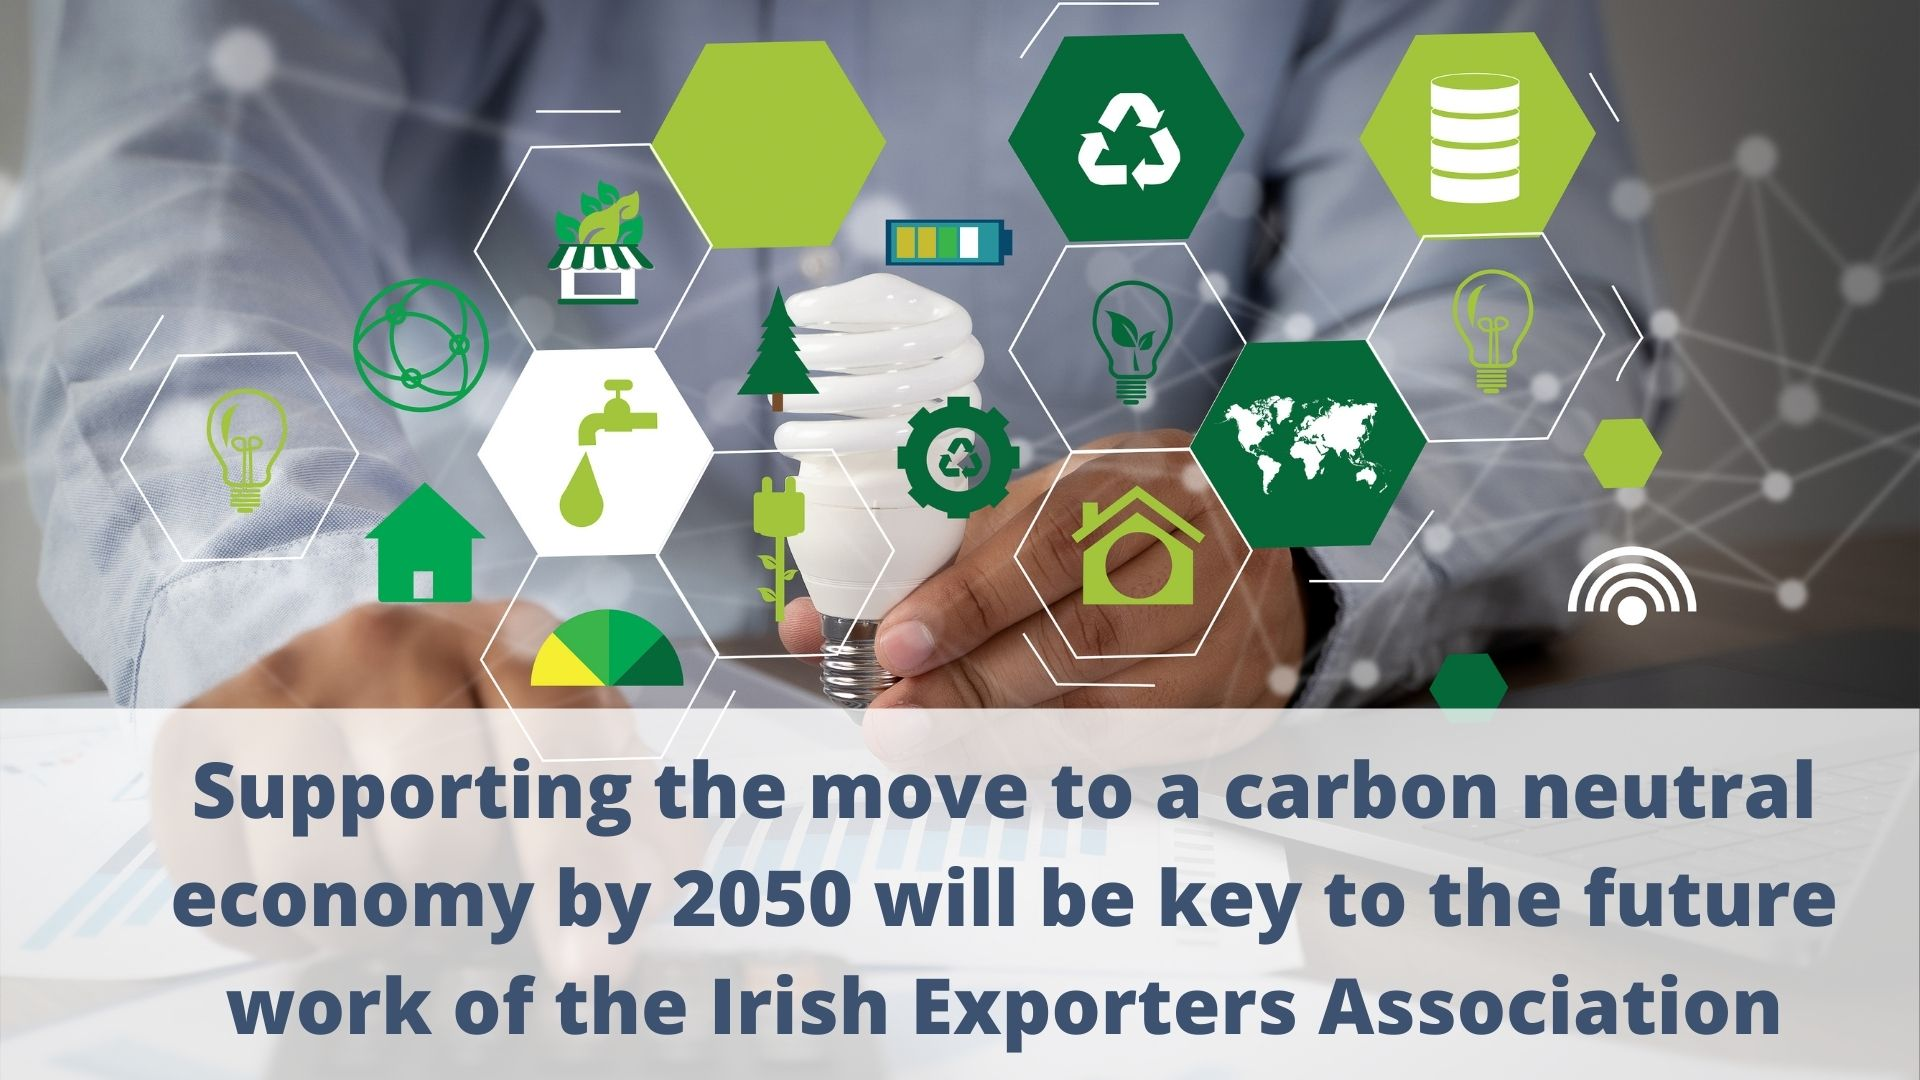 Supporting the move to a carbon neutral economy by 2050 will be key to the future work of the Irish Exporters Association